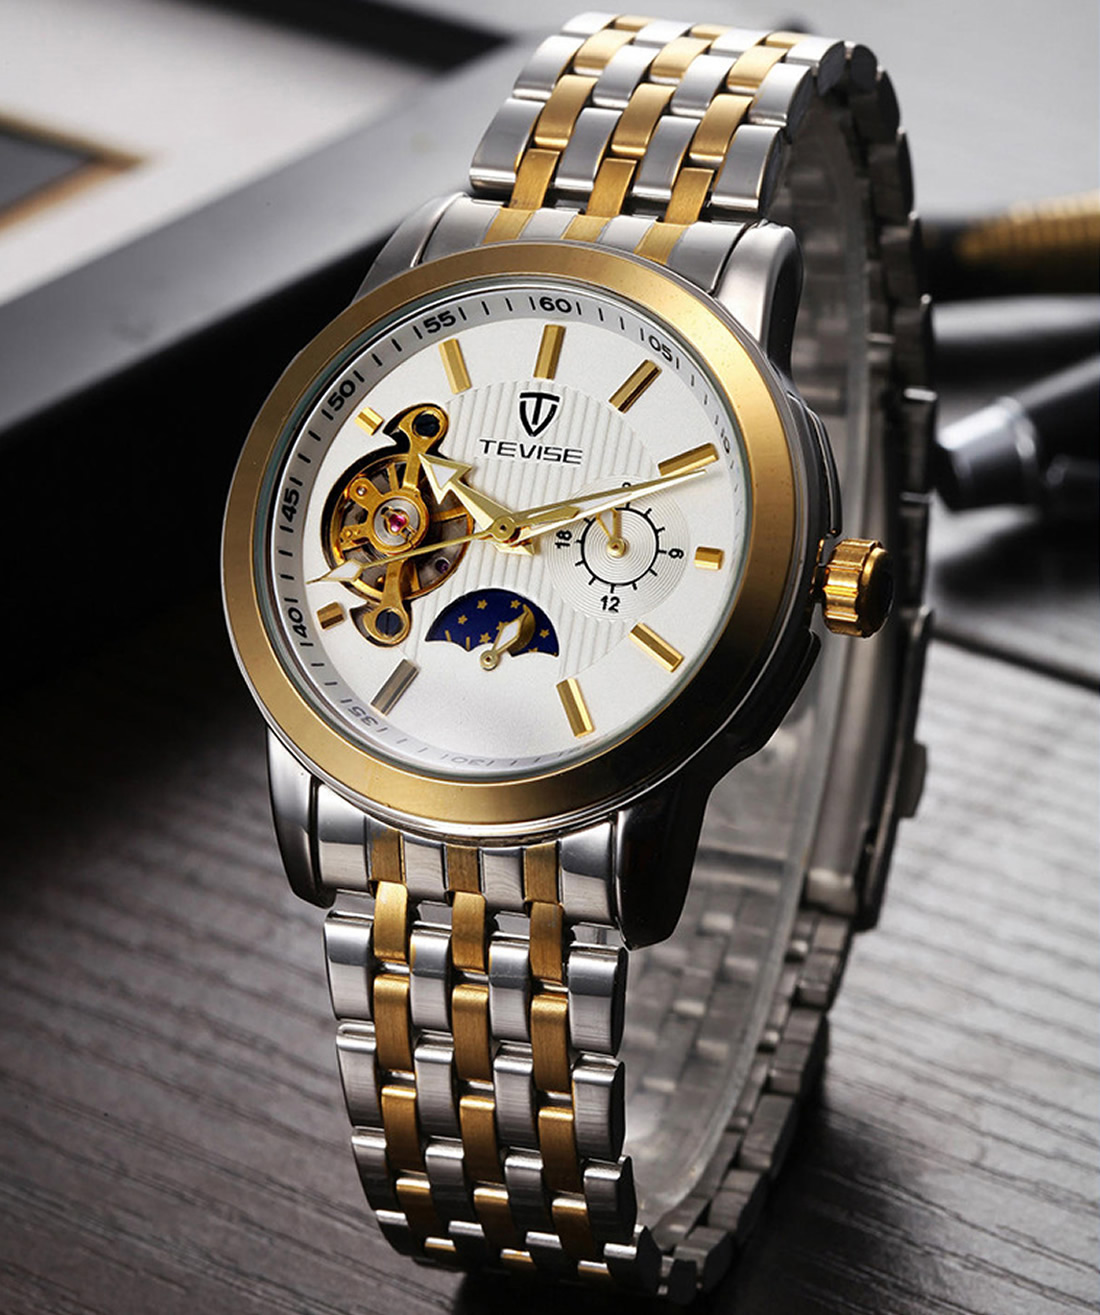 Quartz Watch Men 2018 Top Brand Luxury Famous Male WristWatch steel Watchband luxury Style business watch Relogio Masculino new <br>